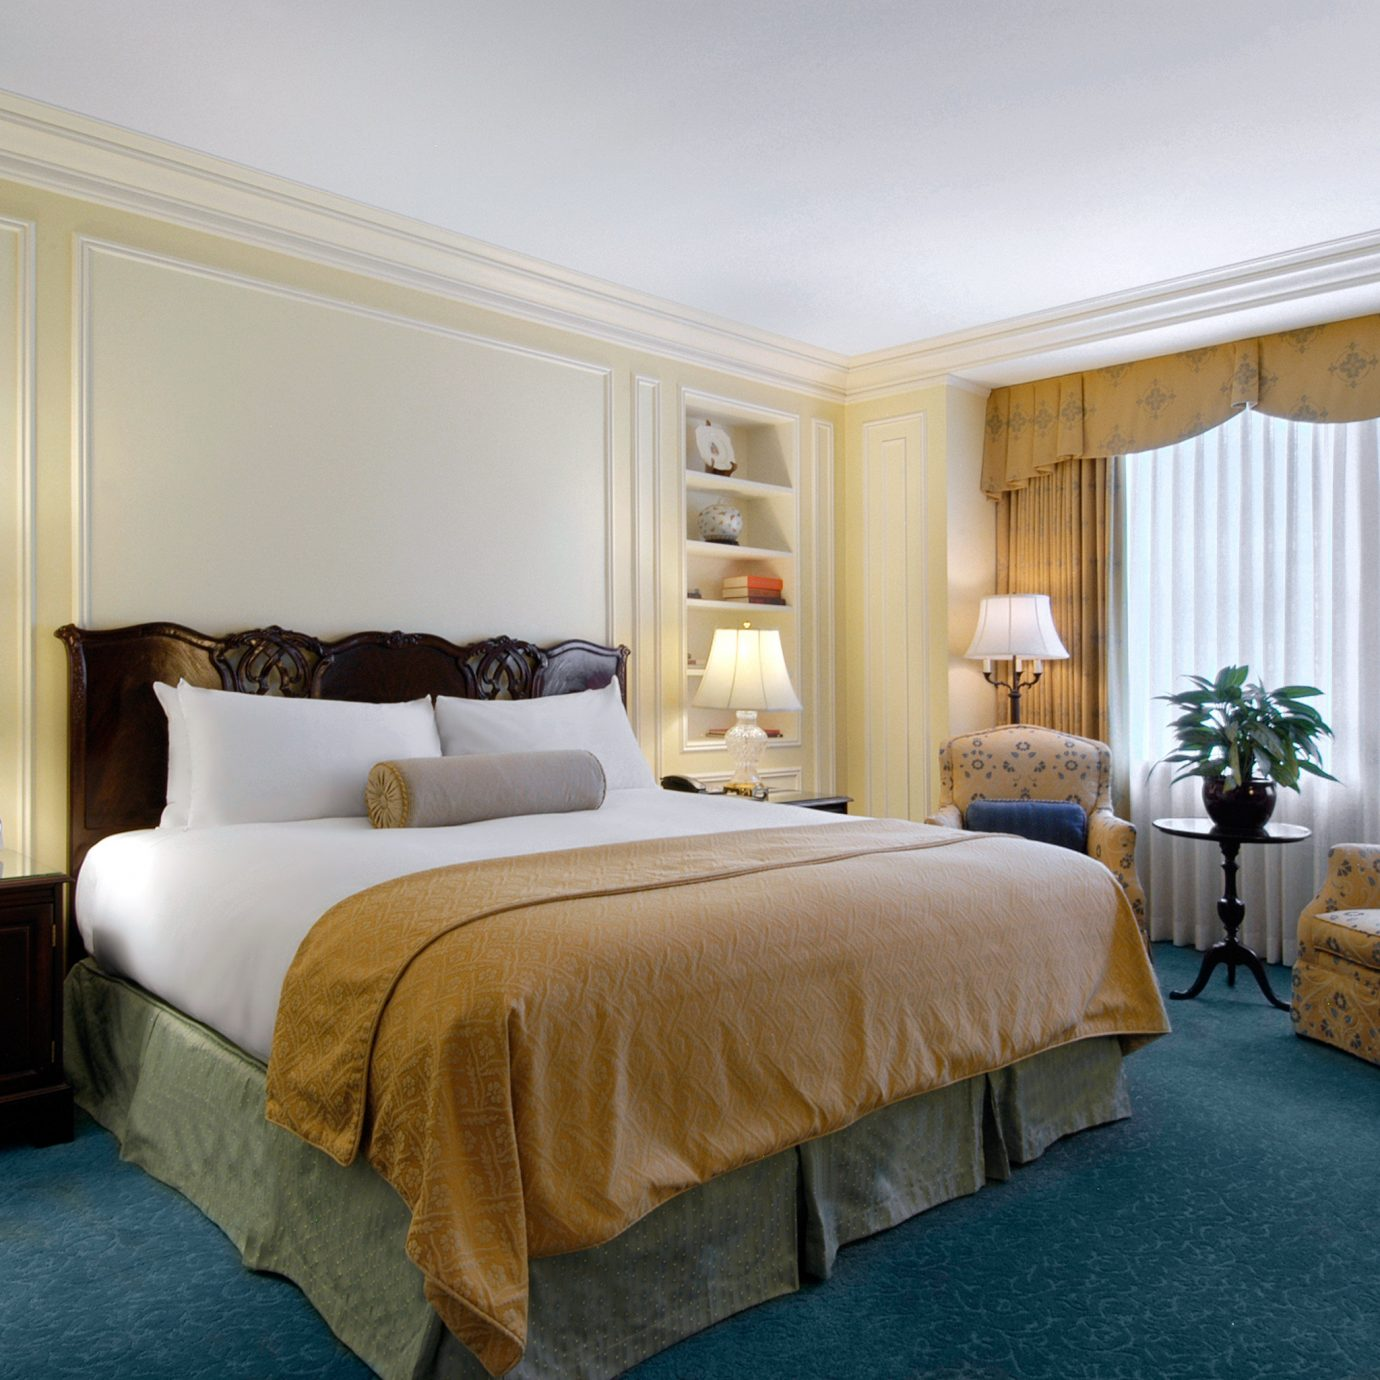 Bedroom Classic Historic Hotels Suite property home living room cottage containing